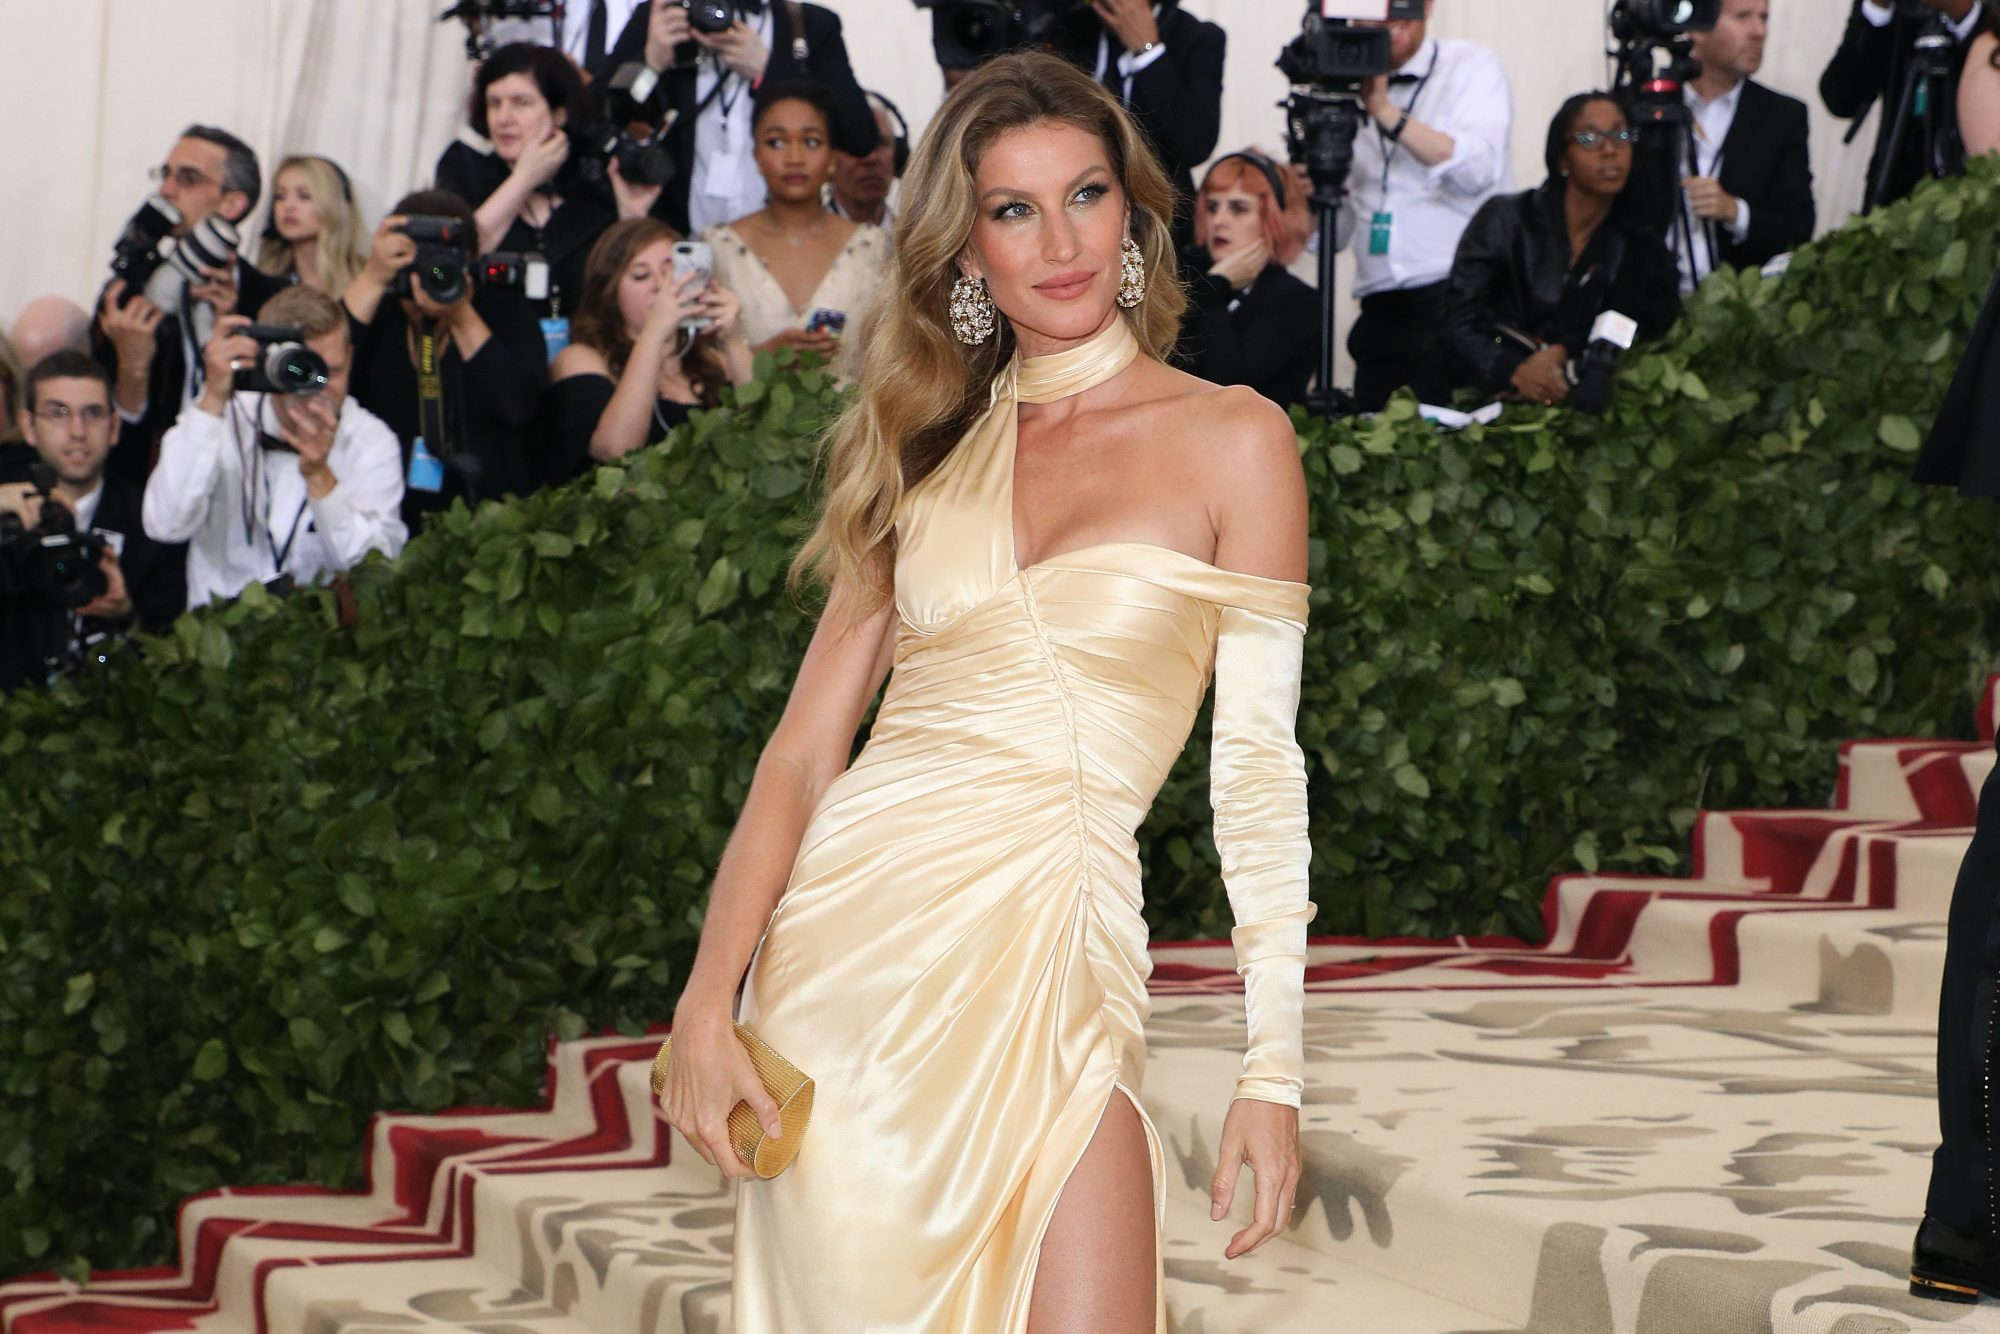 Gisele Bündchen Says She Split from Leonardo DiCaprio Because She Was 'No Longer Numbing' Herself